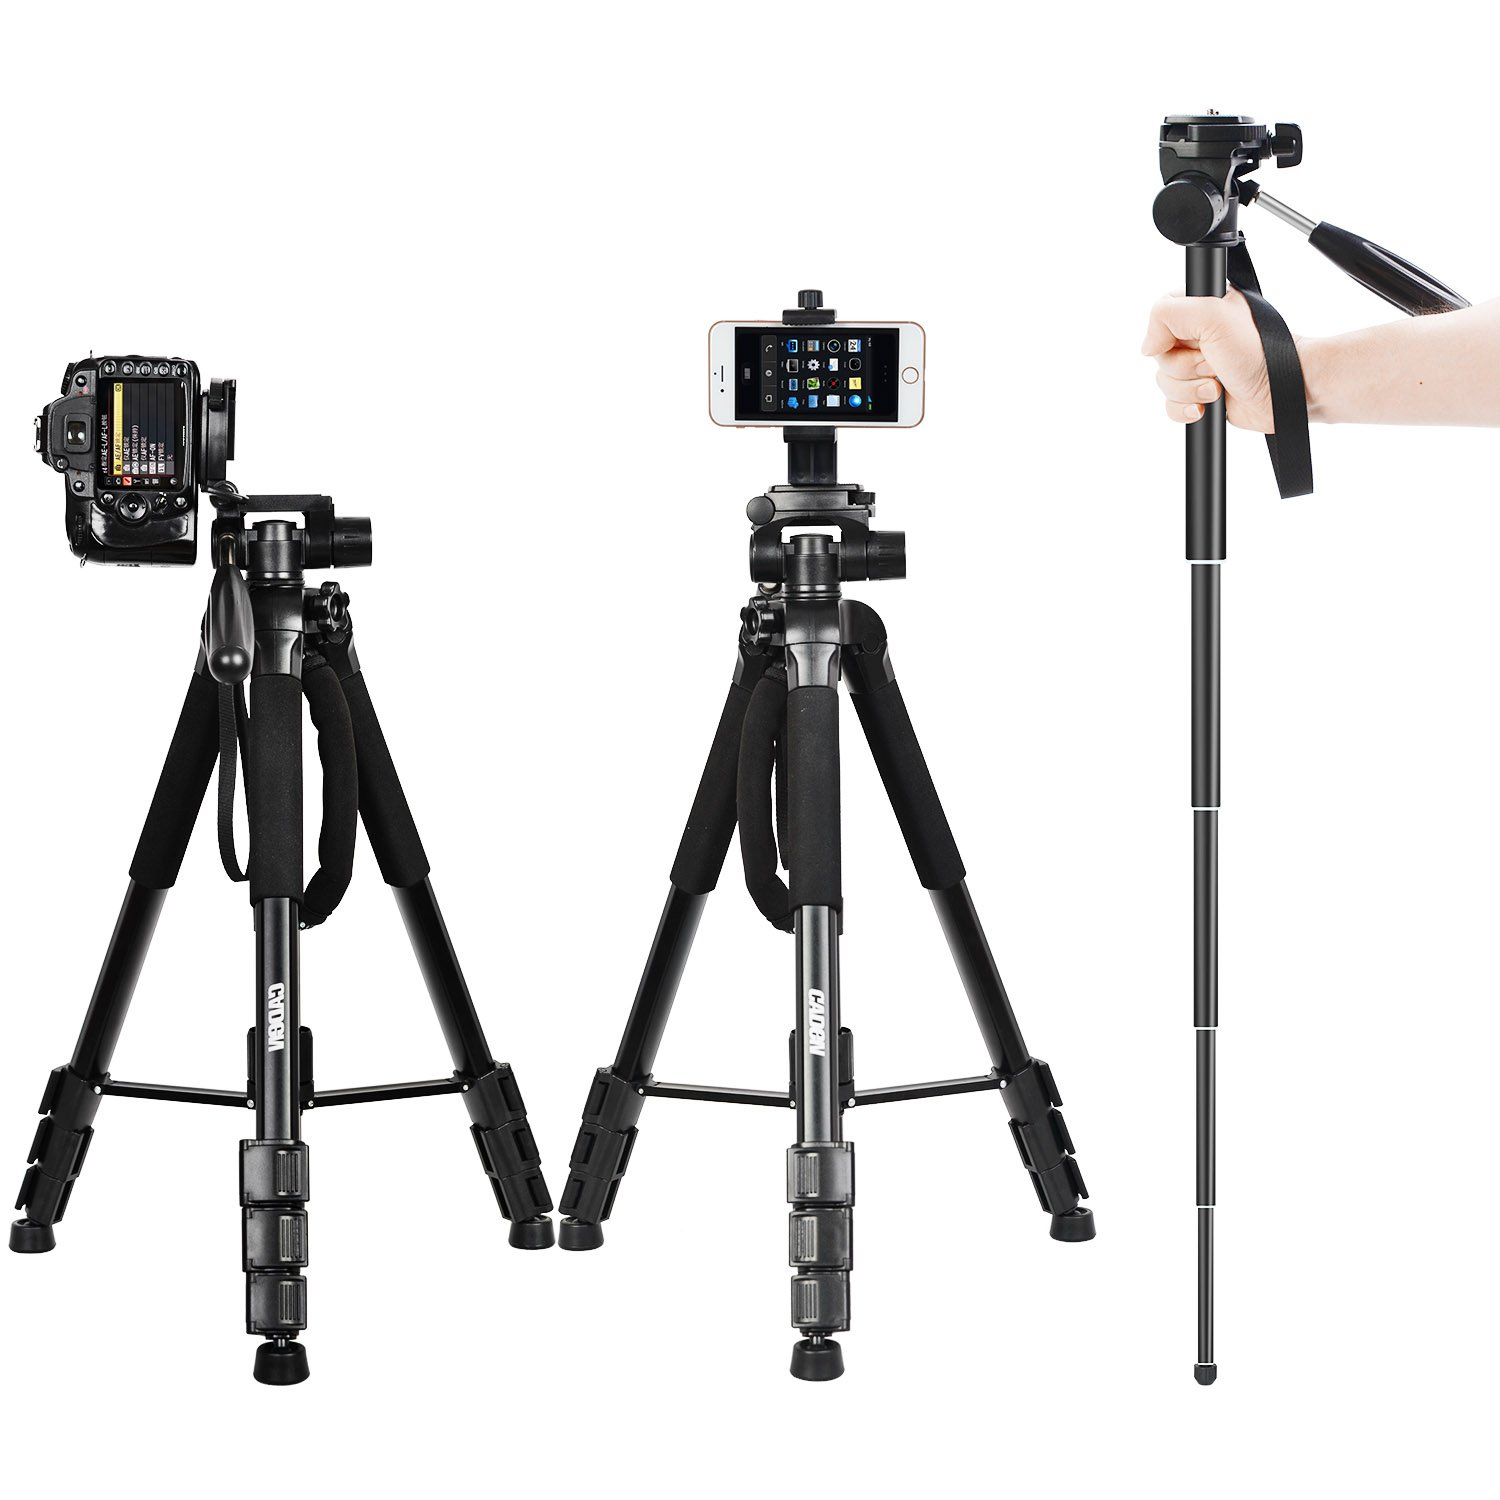 70'' DSLR Camera Tripod Travel Monopod Lightweight Portable Aluminum Tripod for Canon Nikon Sony SLR Camera with Carry bag and CellPhone Mount